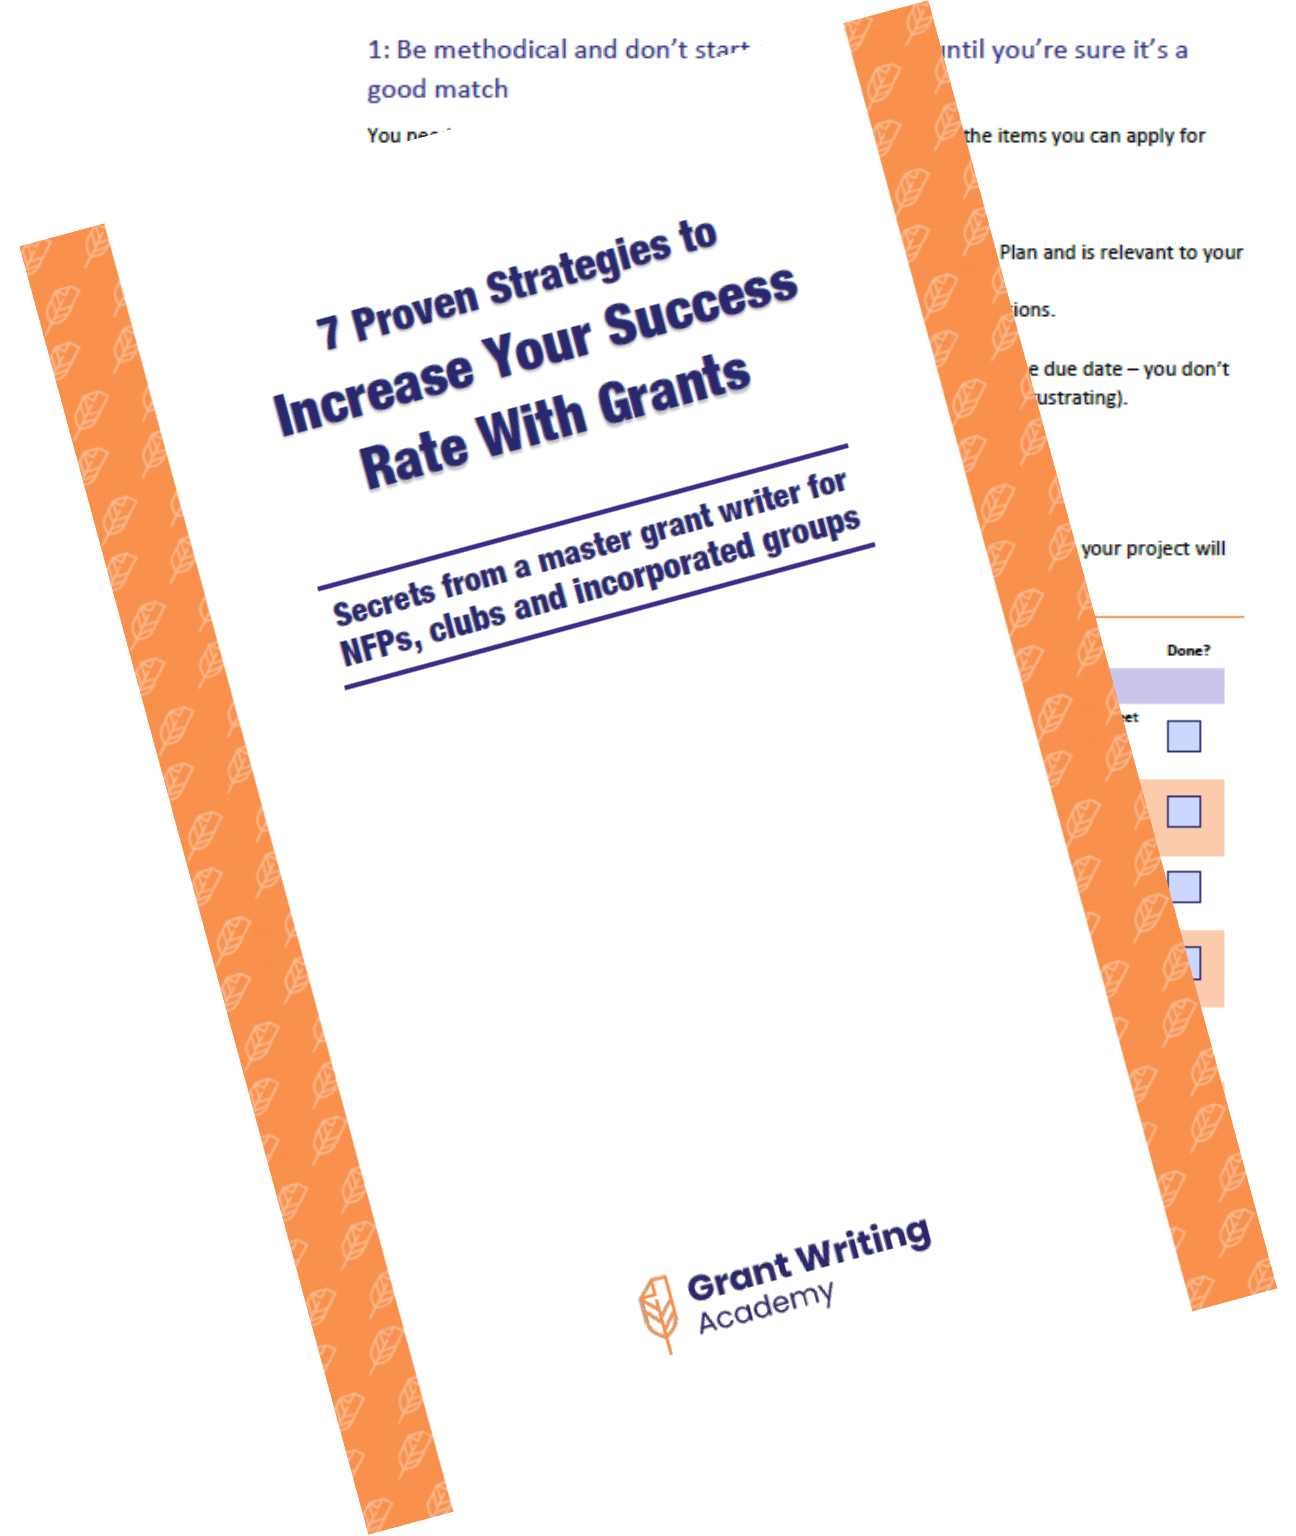 7 Proven Strategies to increase your success rate with grants